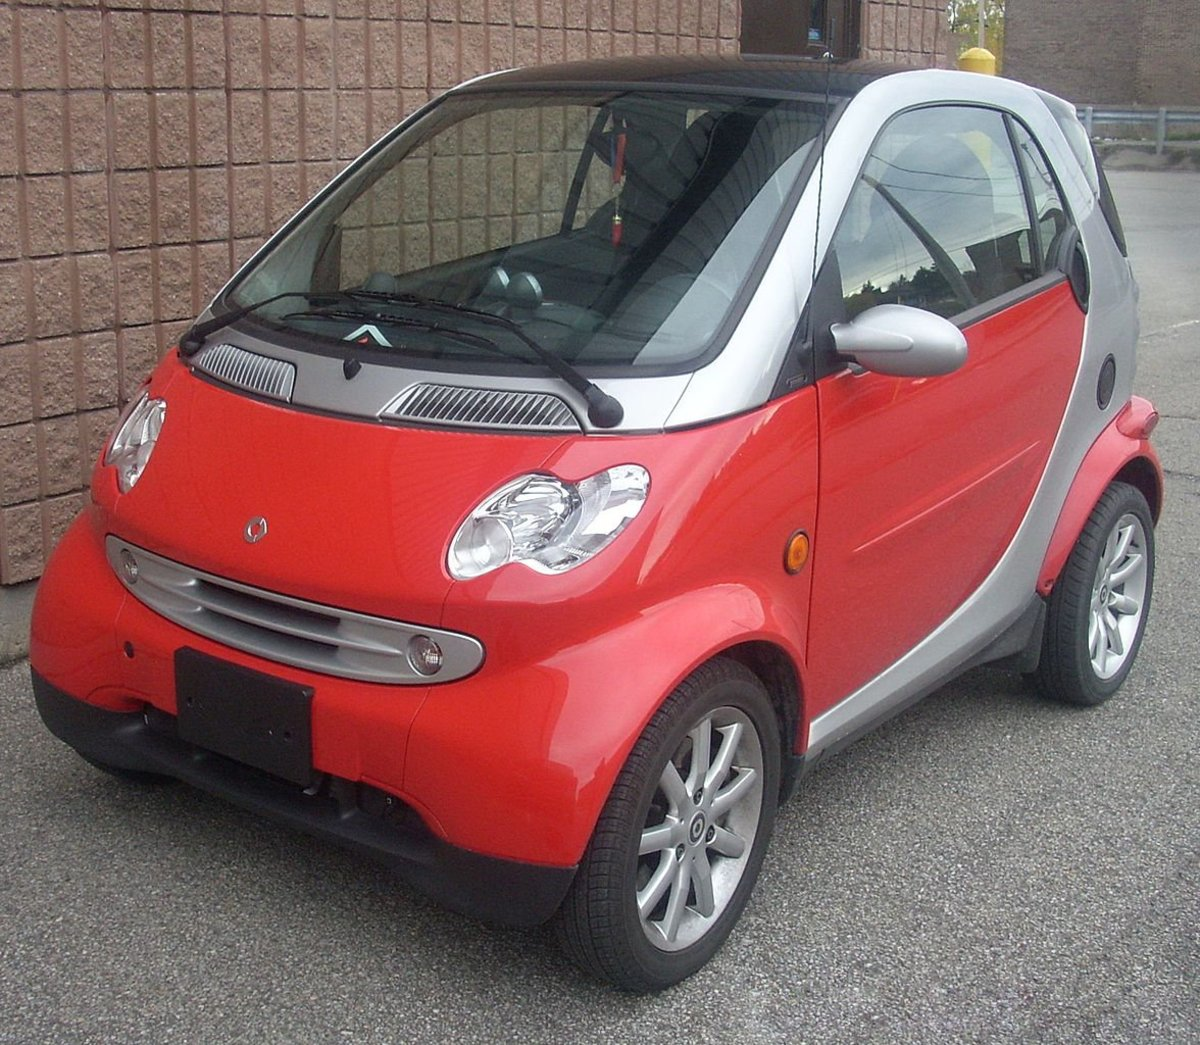 Small Cars: Advantages and Disadvantages